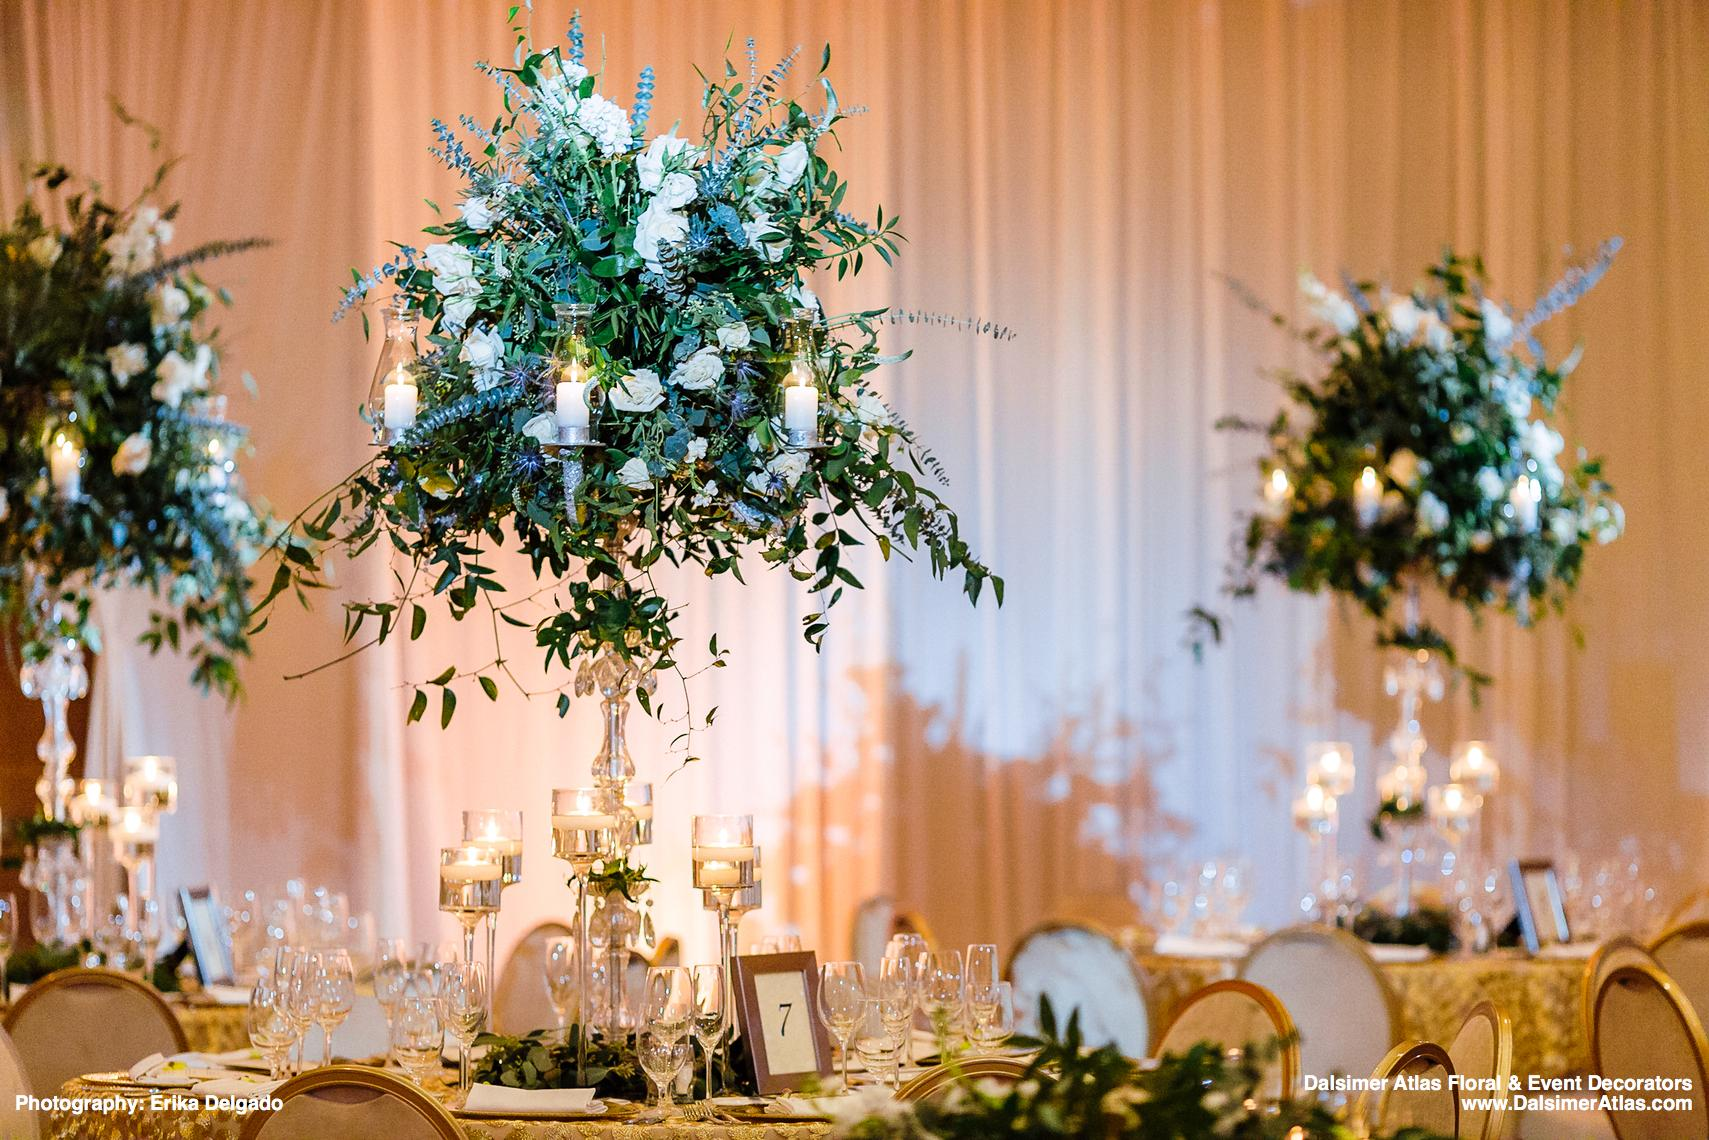 wedding-florist-flowers-decorations-wedding-ritz-carlton-fort-lauderdale-florida-dalsimer-atlas-051118-49